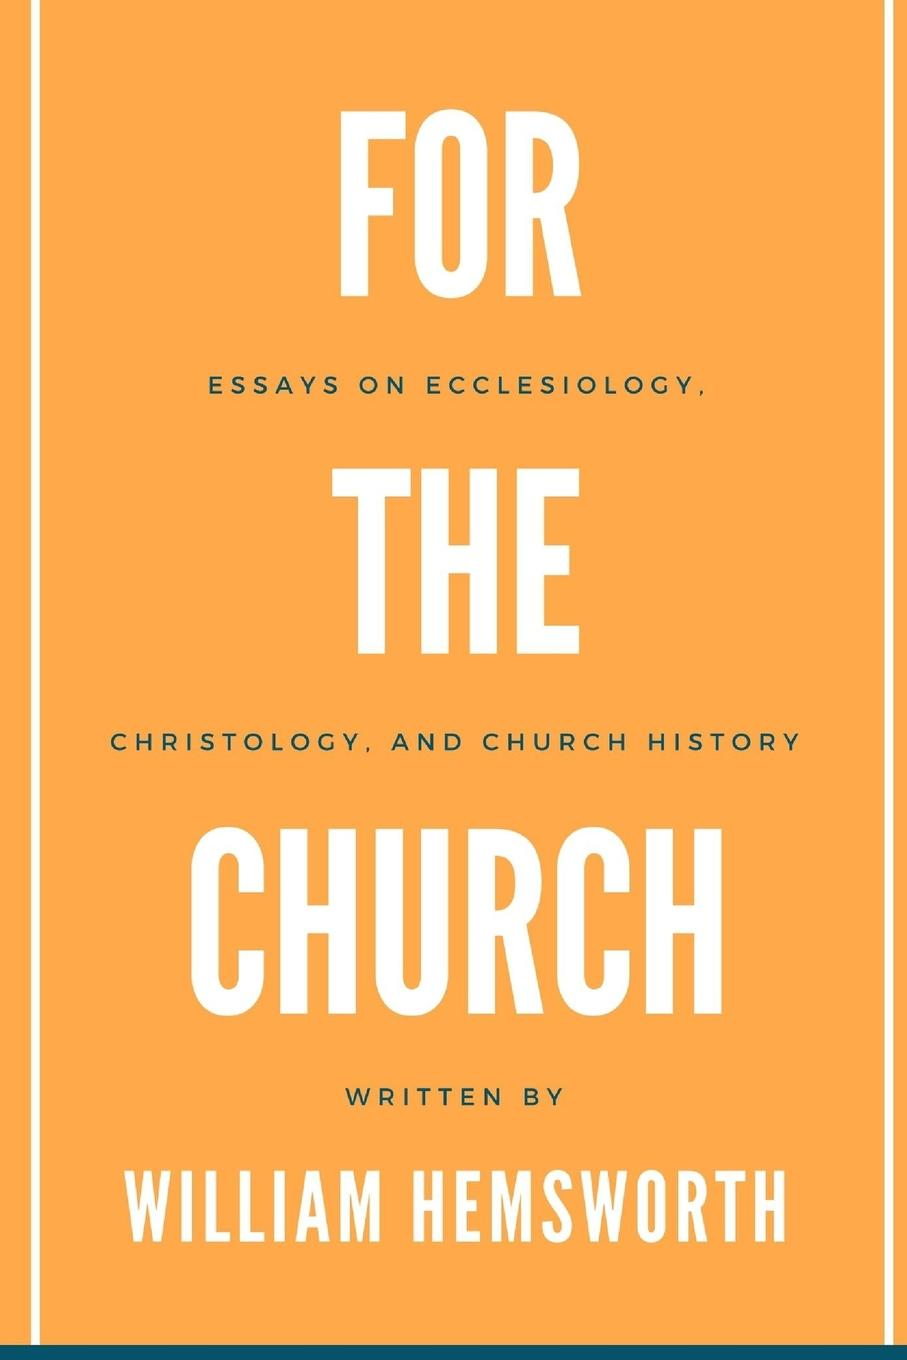 William Hemsworth For The Church. Essays on Ecclesiology, Christology, and Church History harry herman six principles of the doctrine of christ foundation for pentecostal apostolic faith